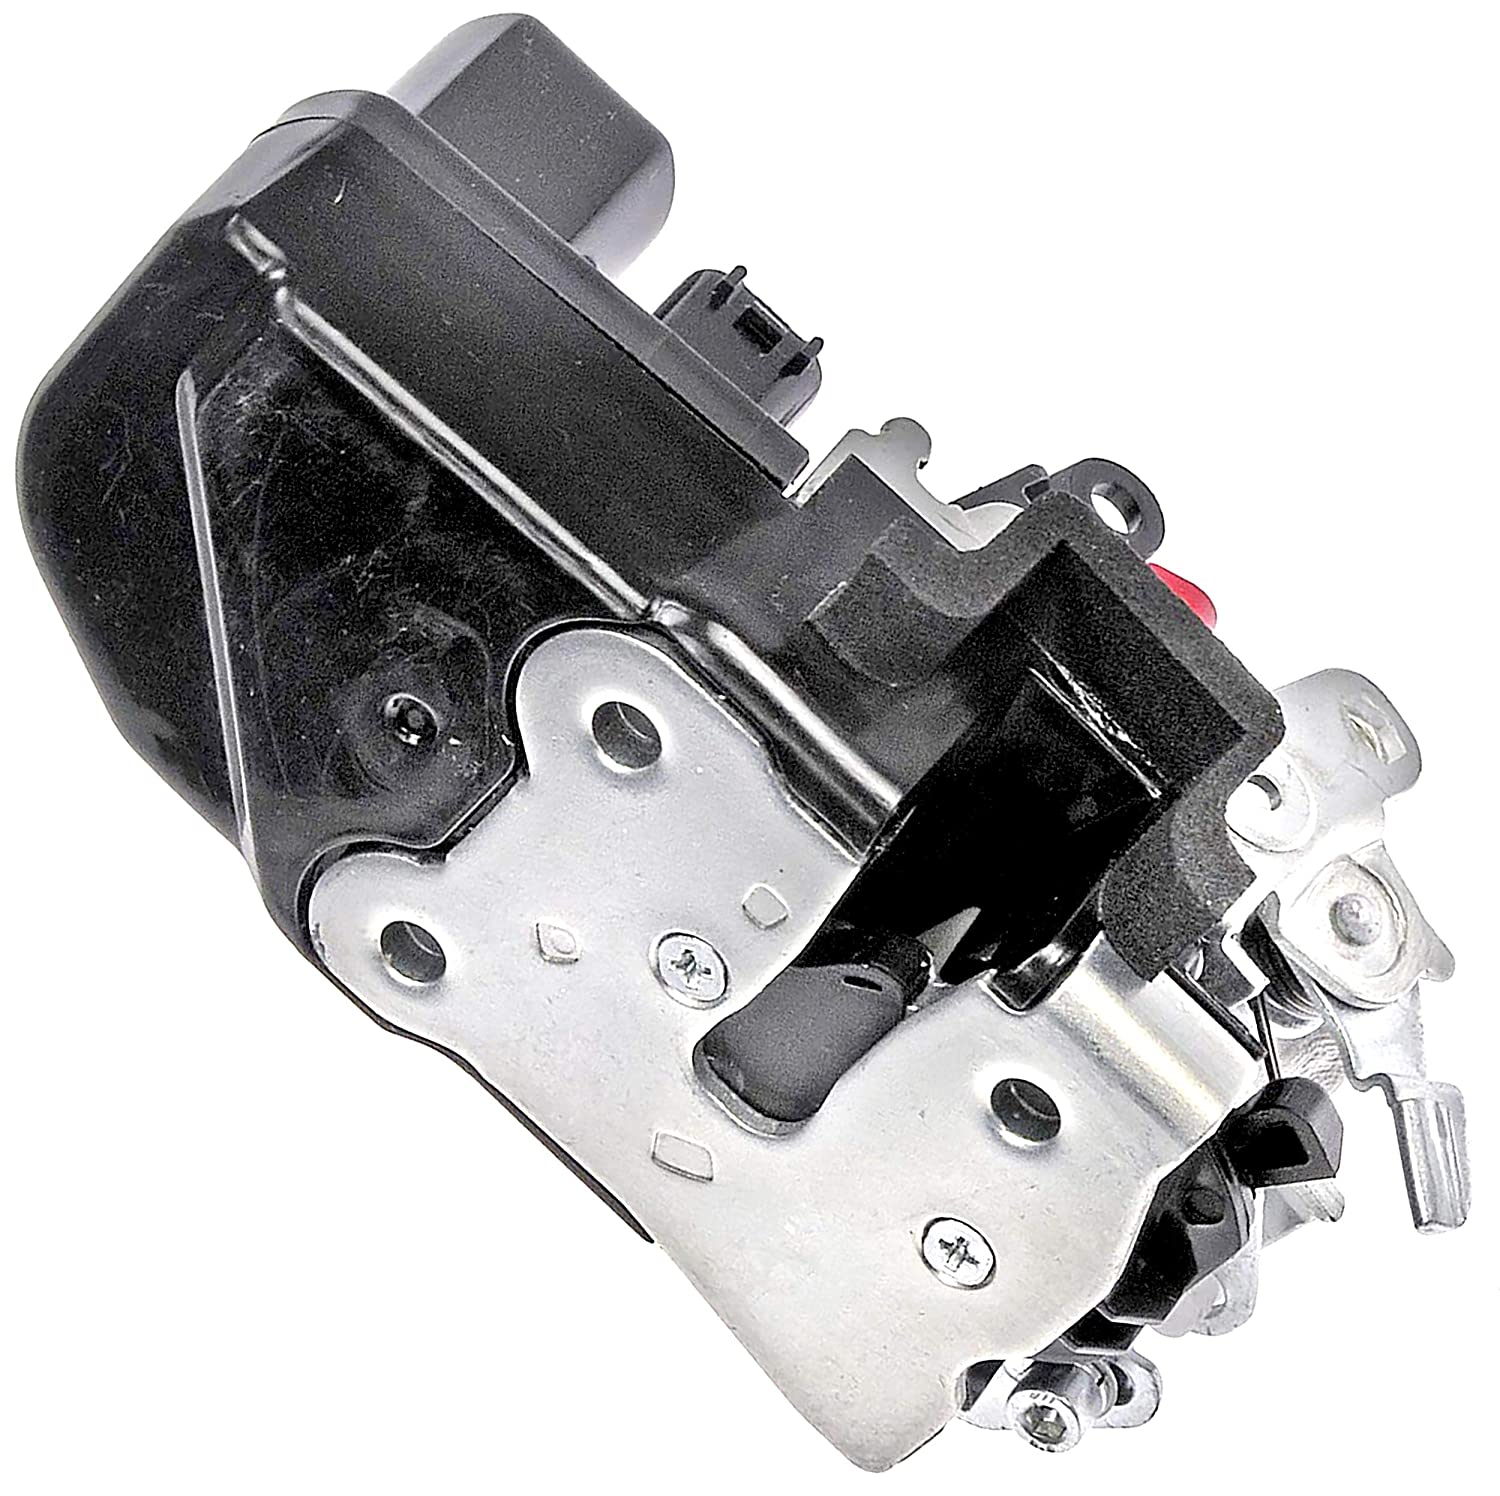 Replaces 55276791AC, 55276585AE, 55372843AA APDTY 120341 Door Latch w//Lock Actuator Motor Fits Front Left 2003-2010 Dodge Ram 1500 2500 3500 Pickup